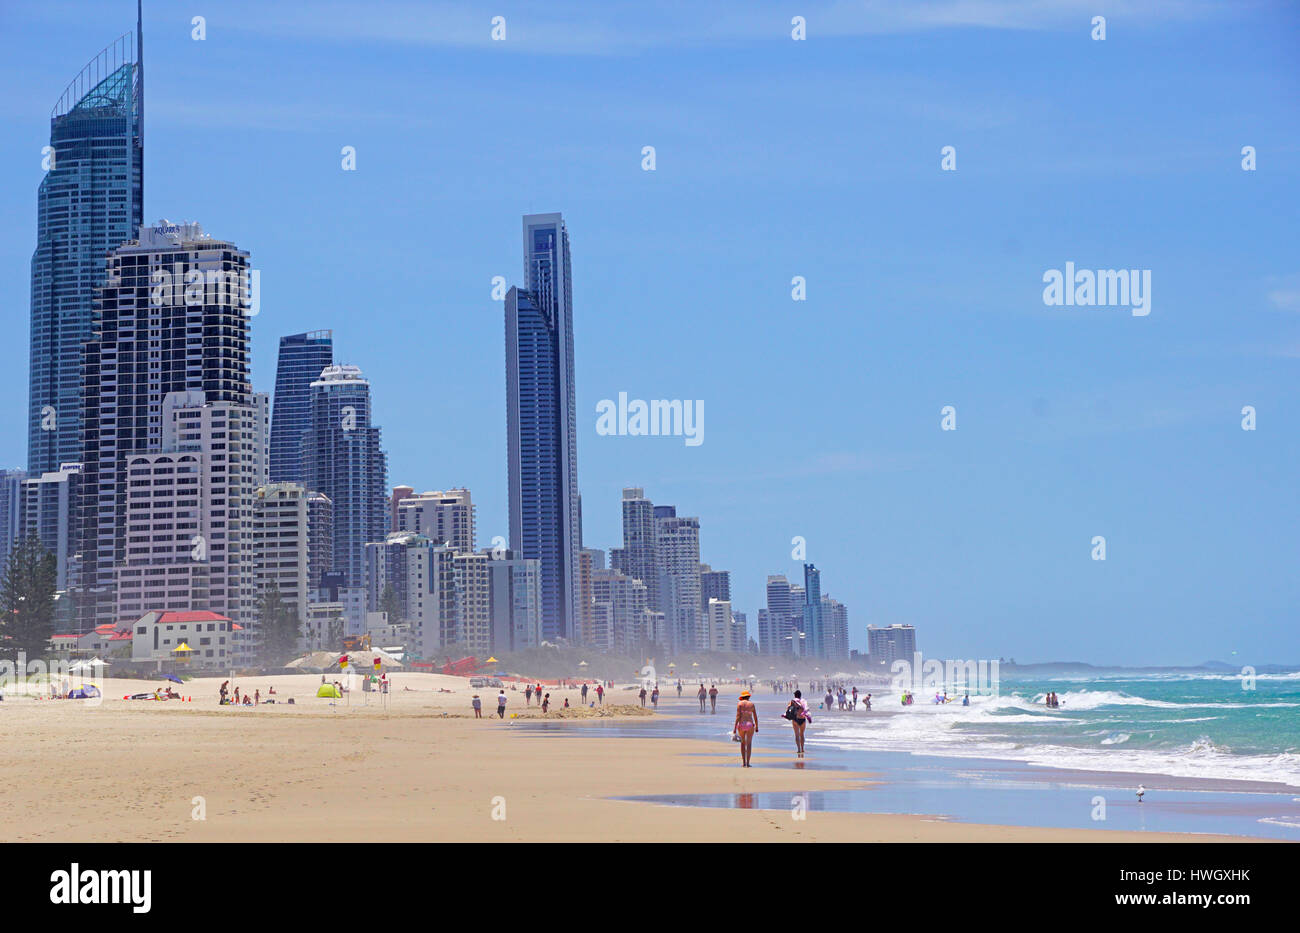 Swimmers on beach at Surfers Paradise, Queensland, Australia. - Stock Image